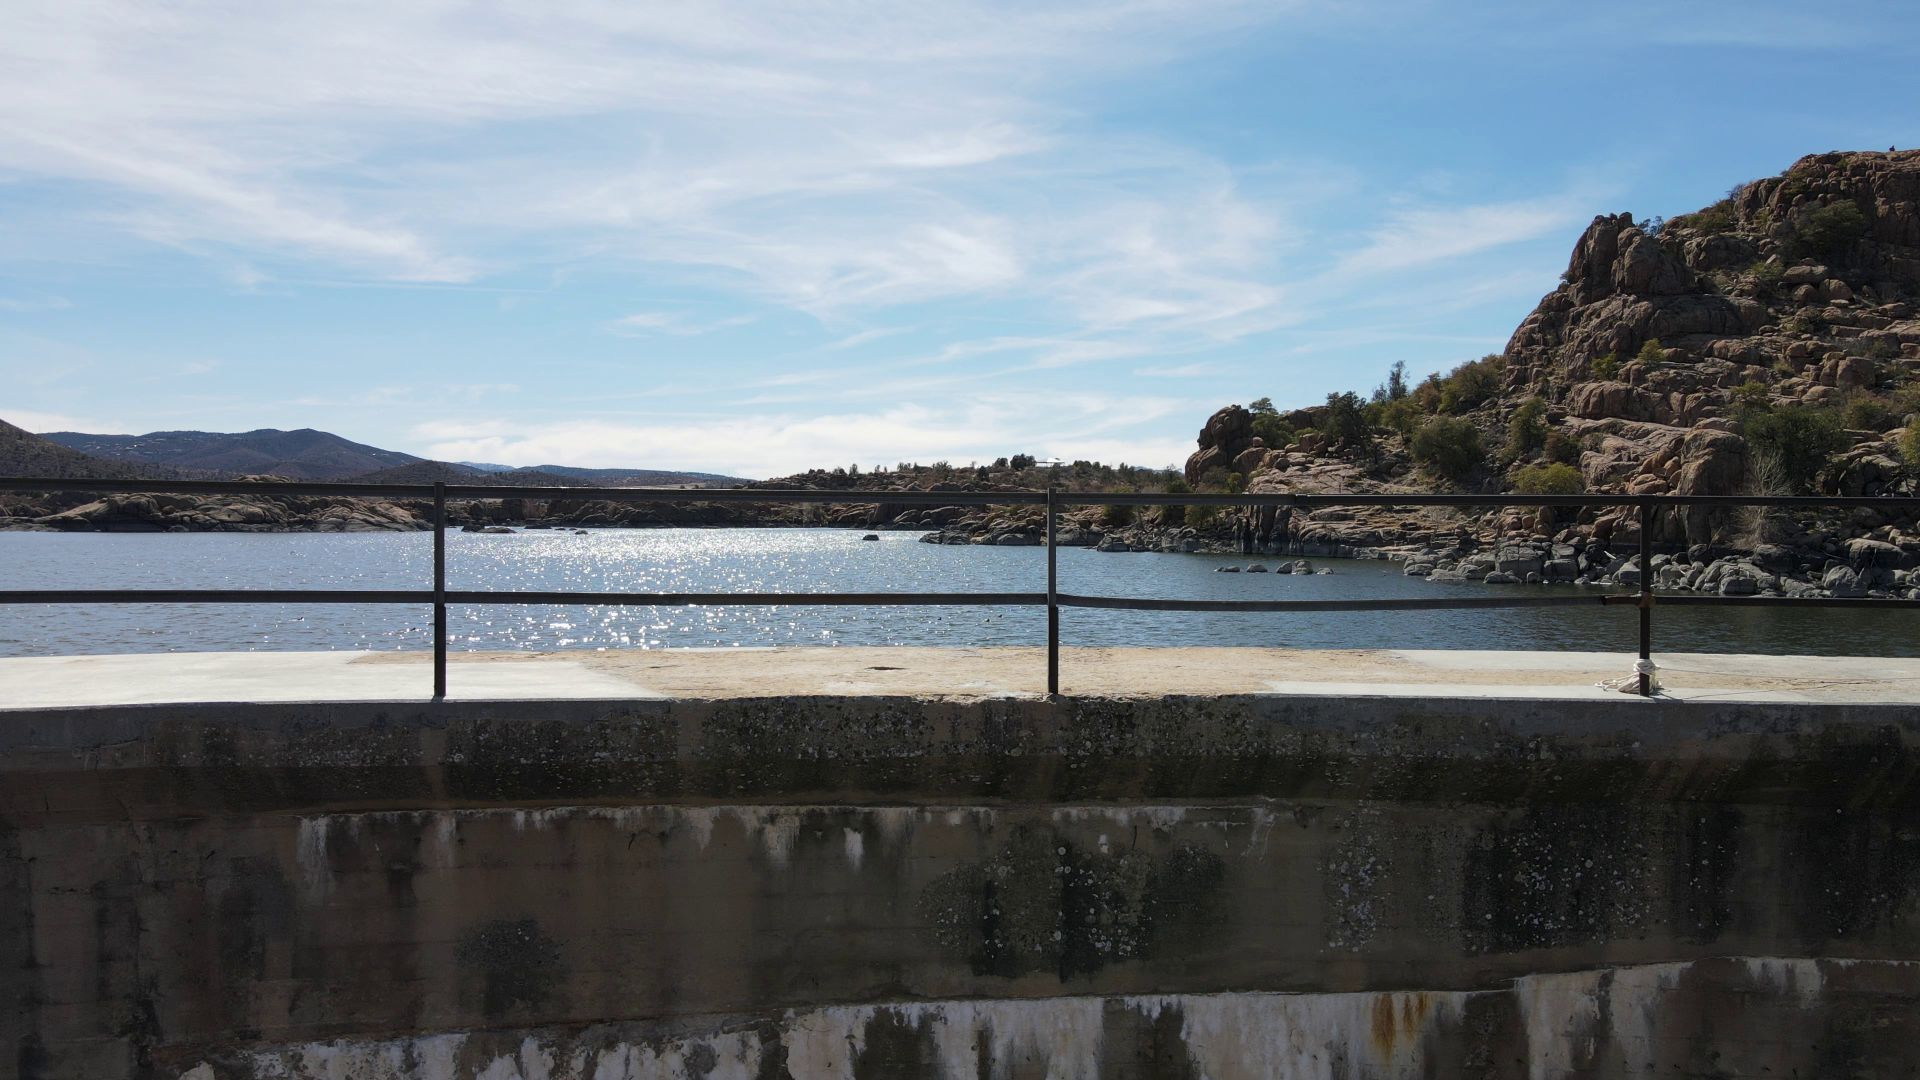 Picture of a dam with the lake in the background